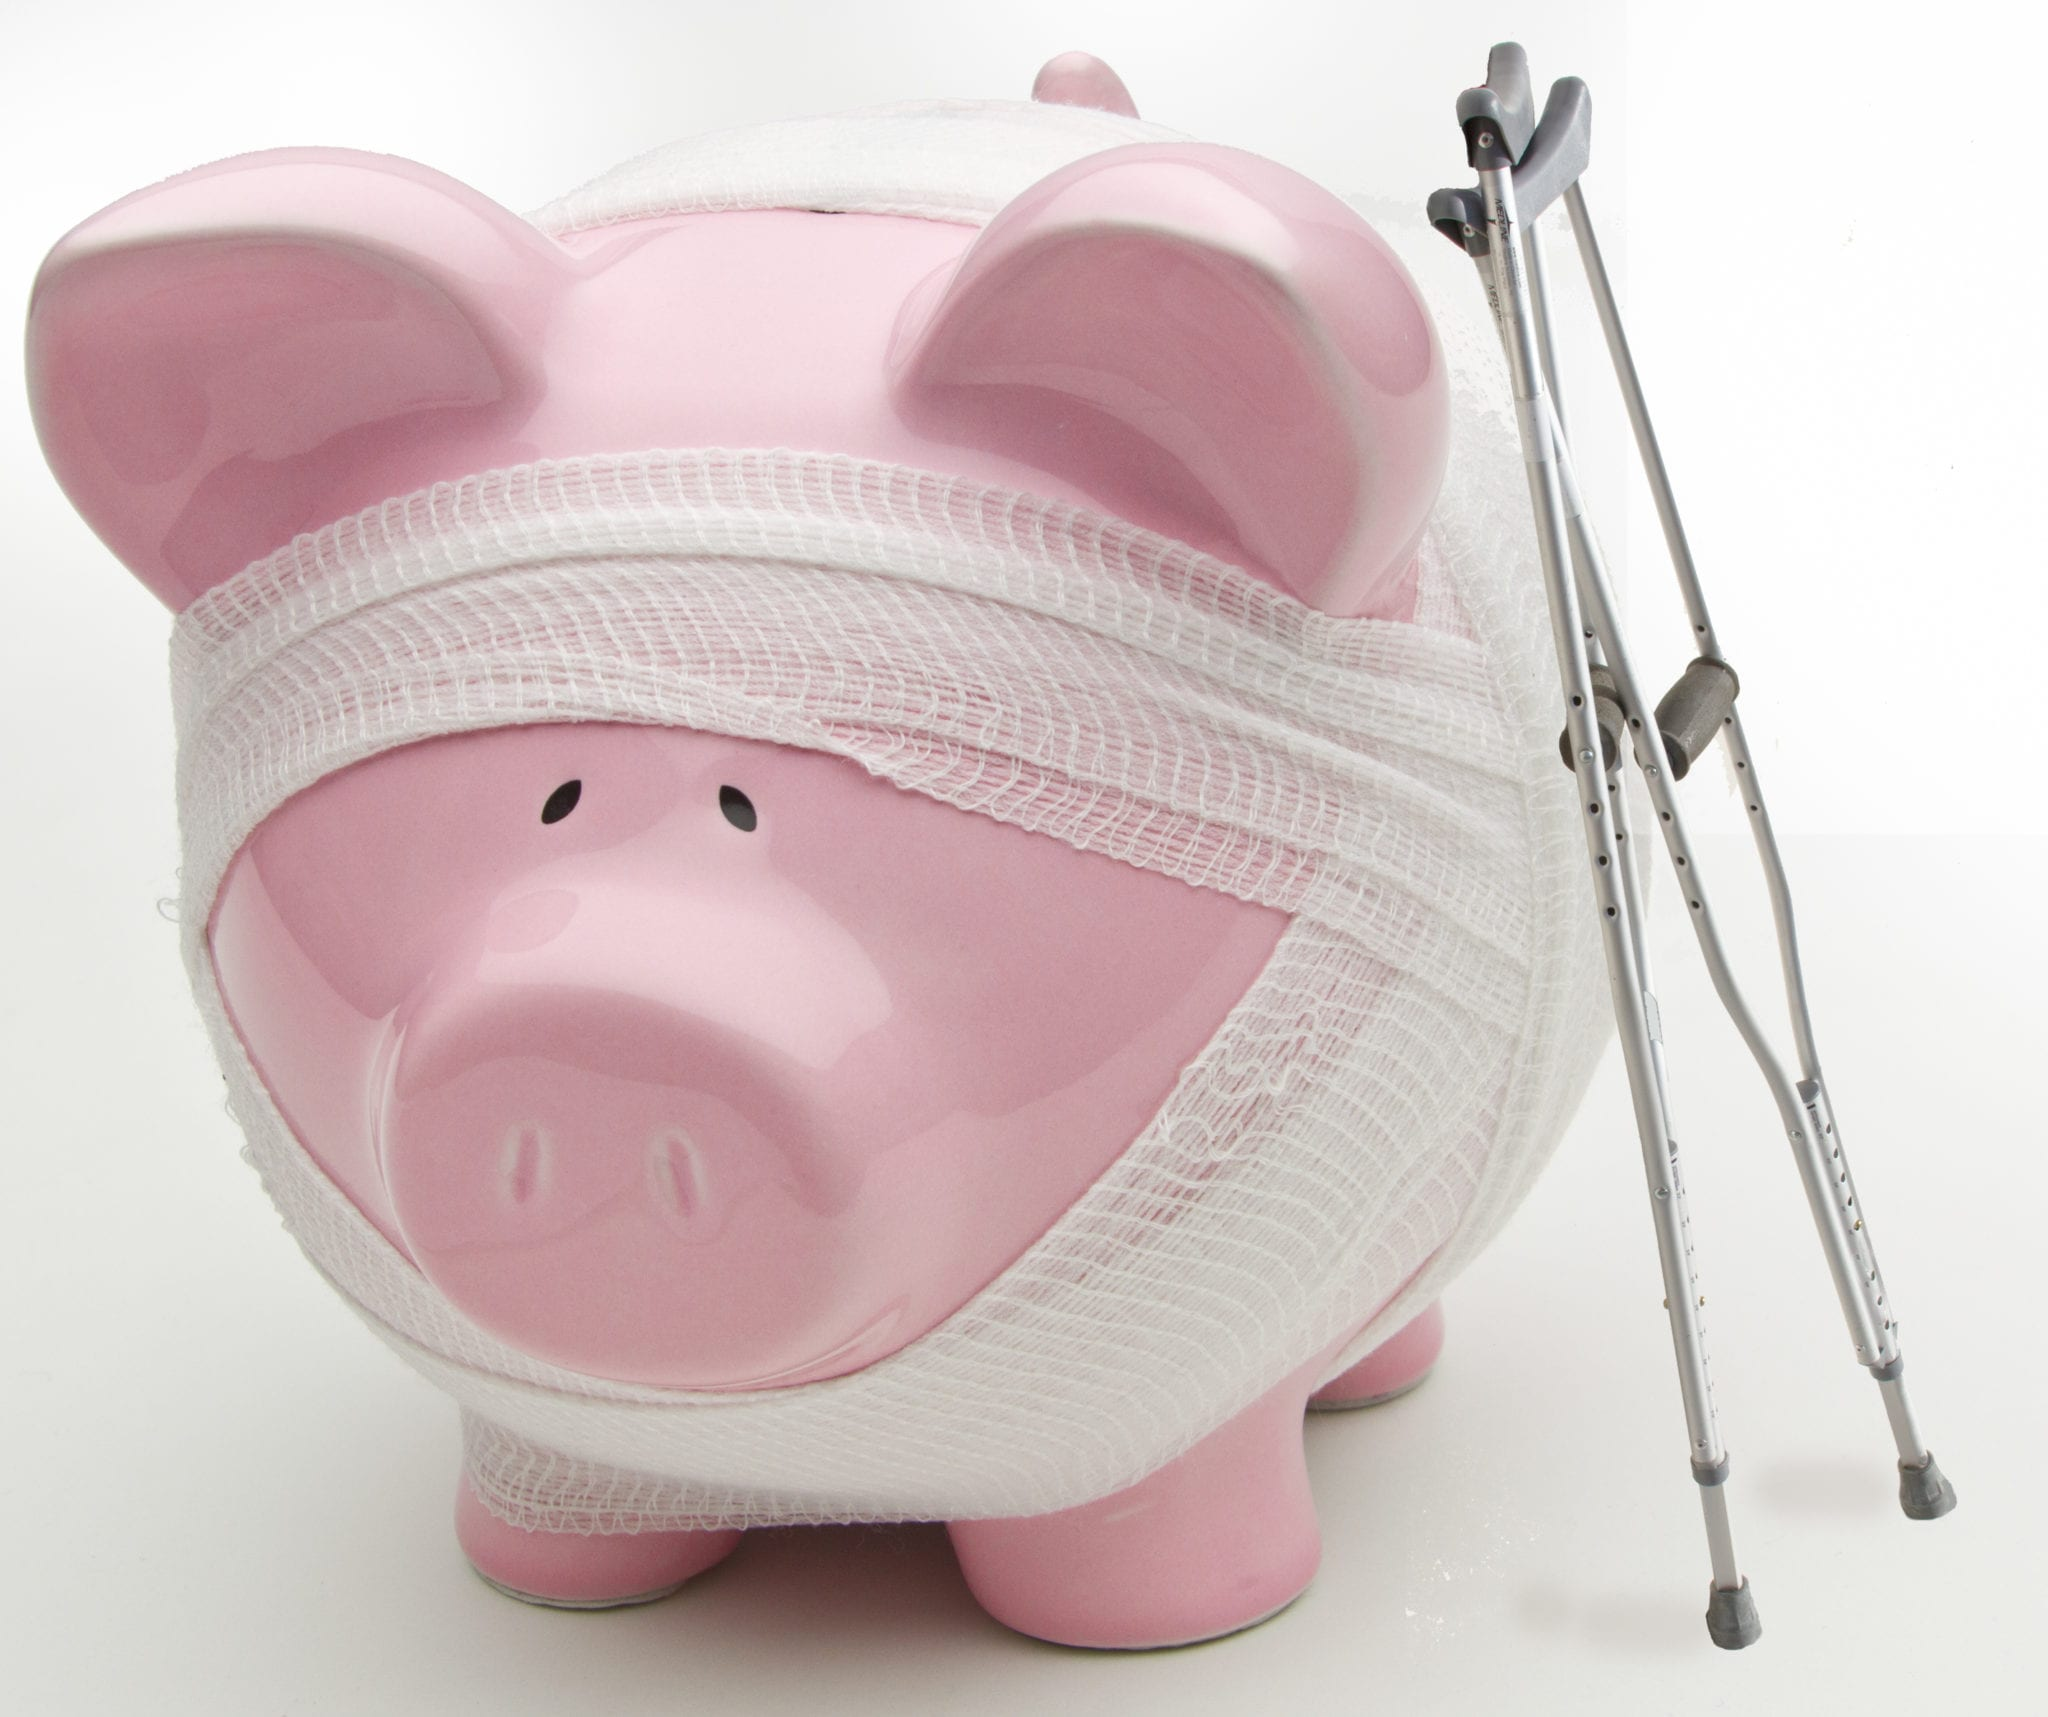 Common types of Personal Injury Claims